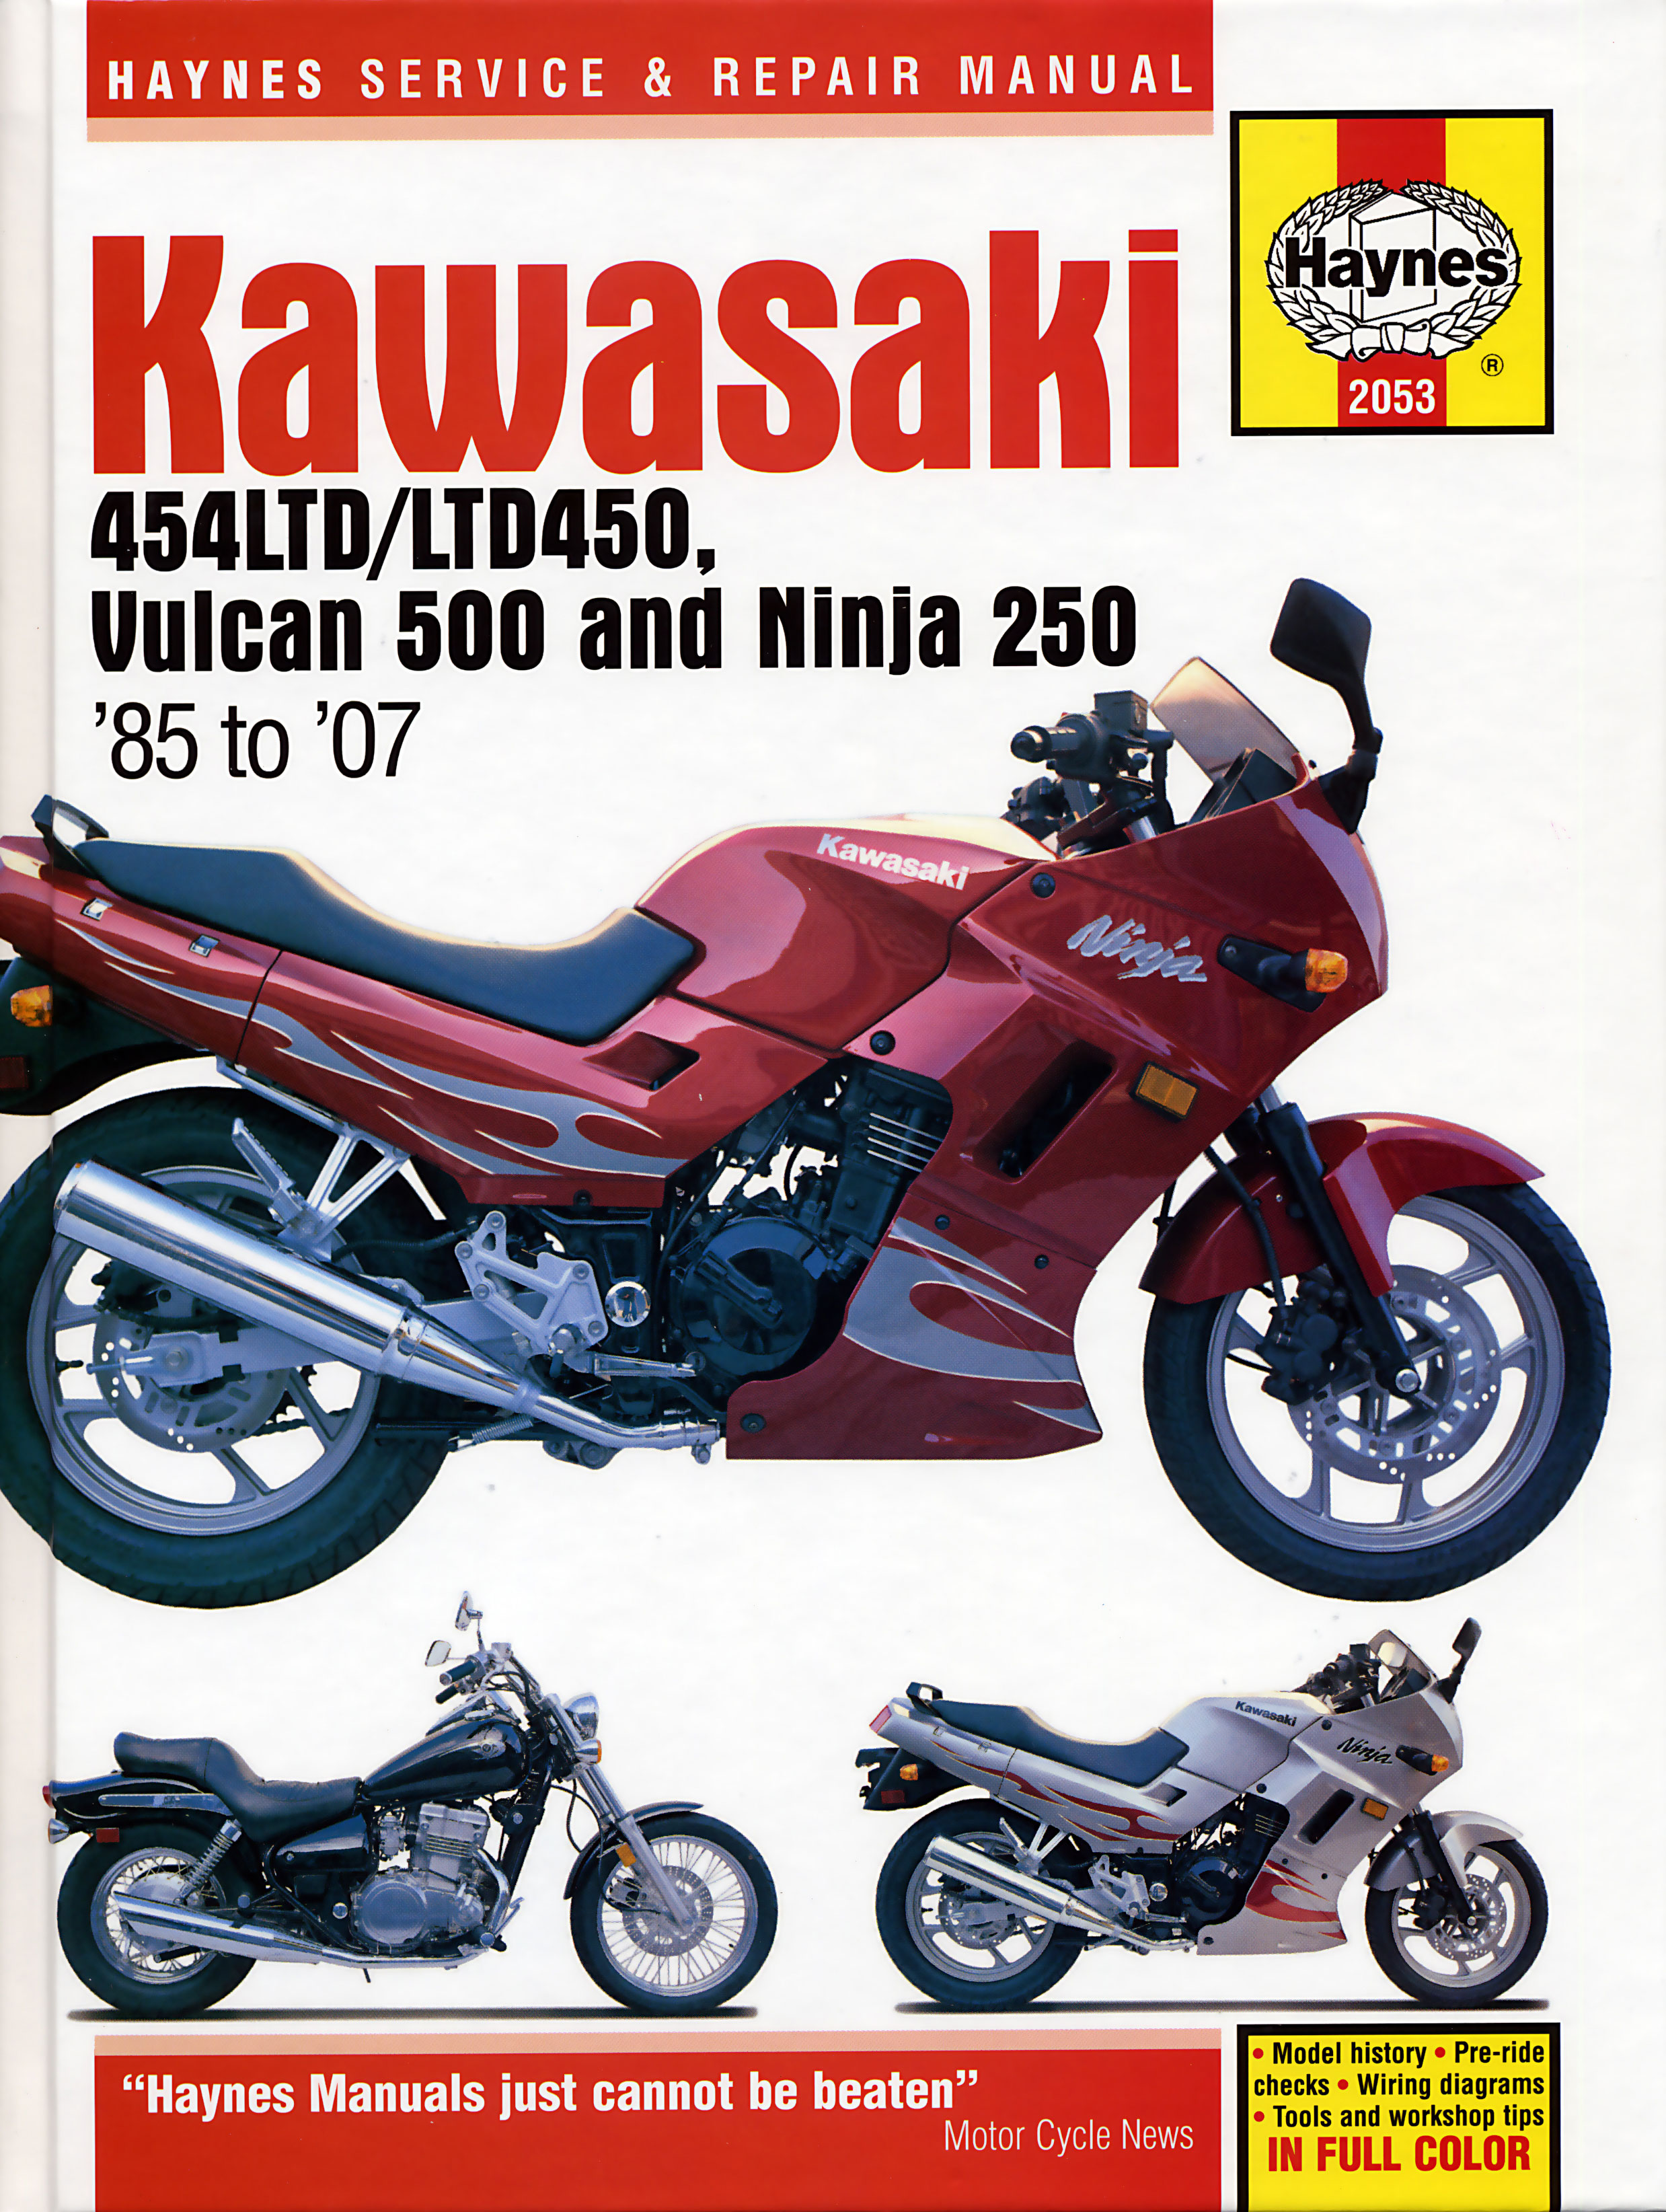 HAYNES Repair Manual - Kawasaki EN500/Vulcan 500 (1990-07) Ninja EX250 on